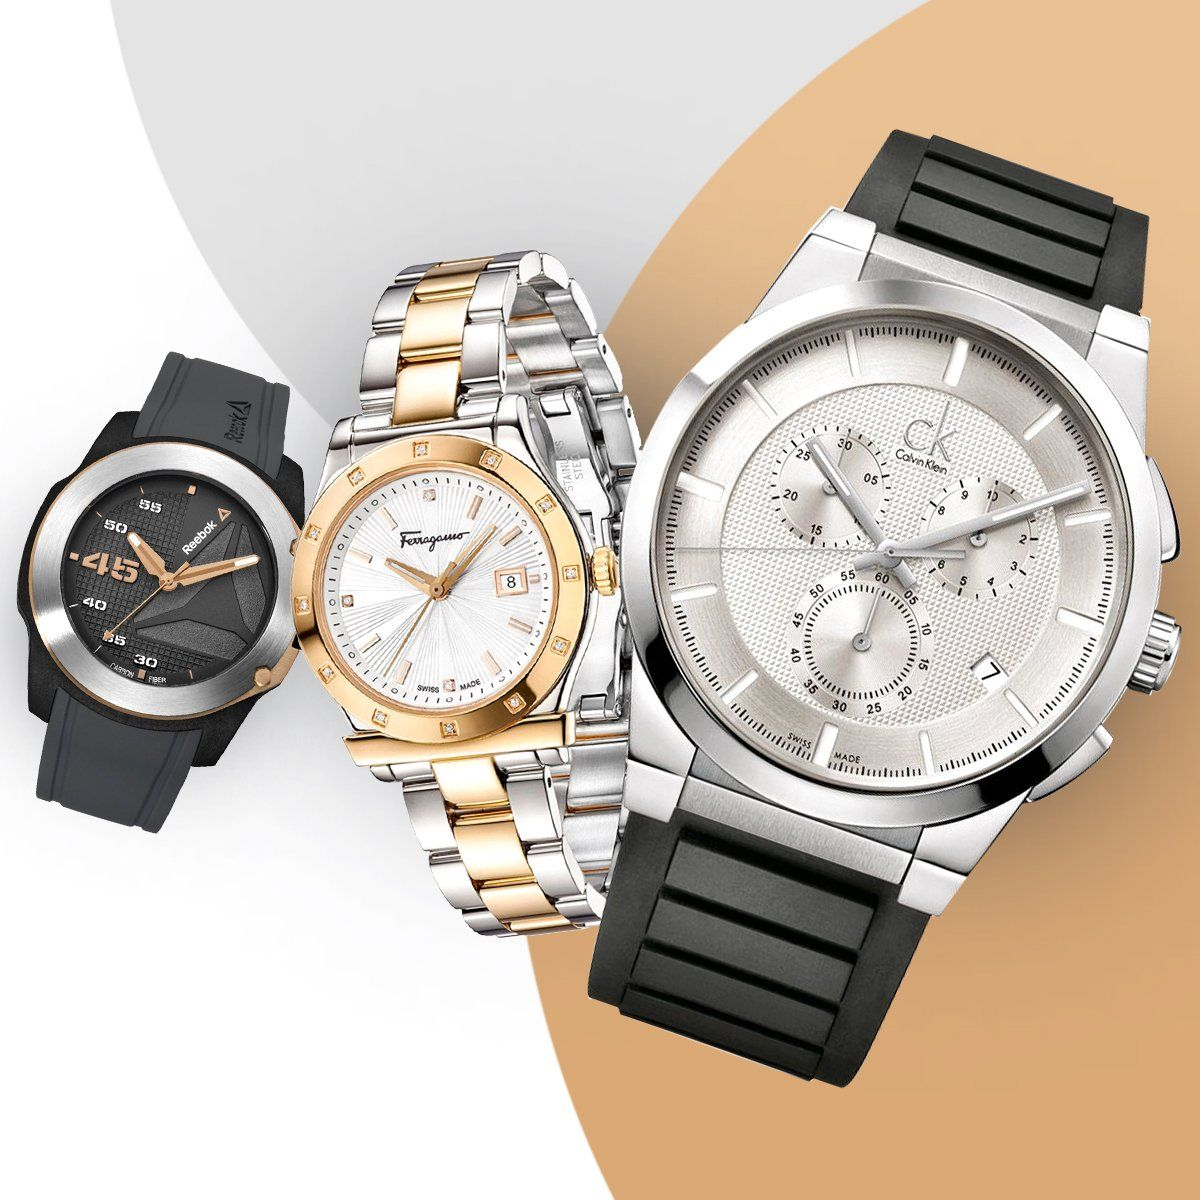 Grab amazing #deals and #discounts on #watches during the